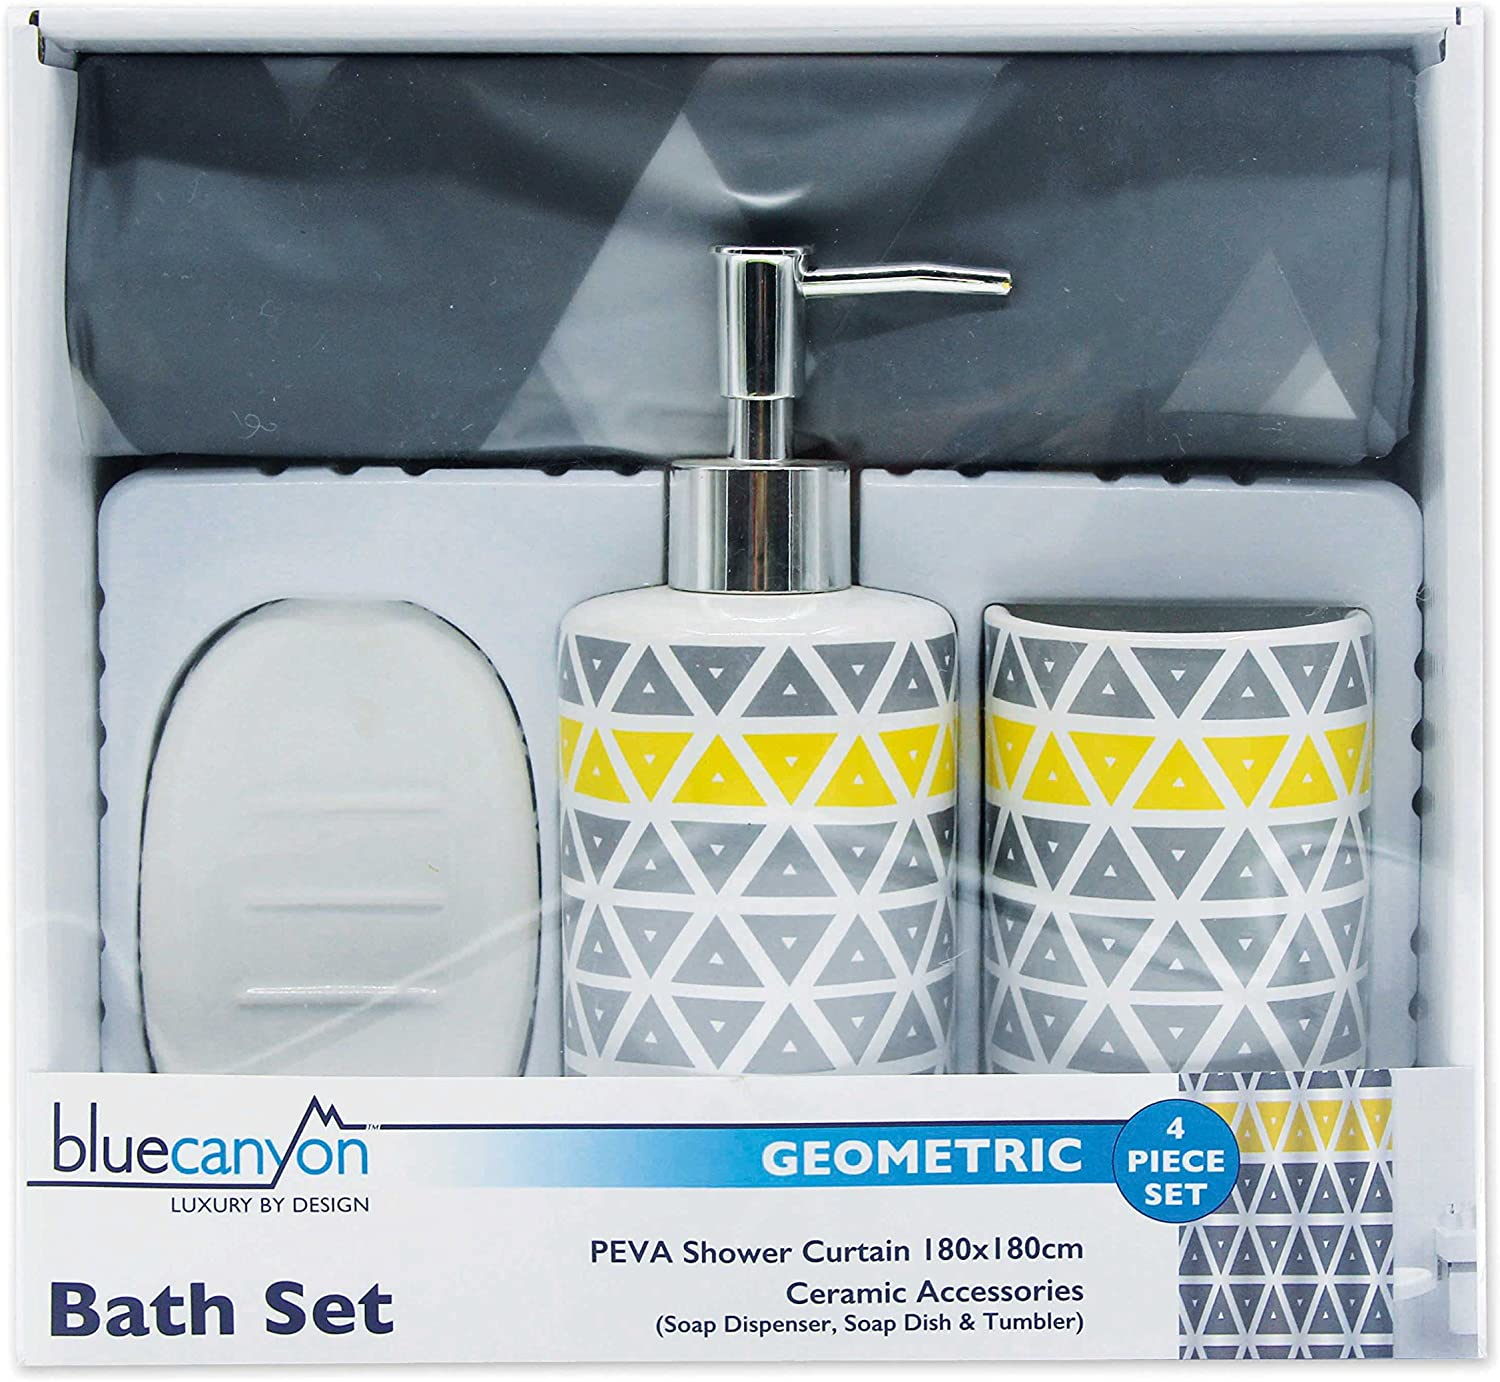 4 Piece Geometric Grey/Yellow Shower Curtain and Accessory Set ( Shower  Curtain, Ceramic Soap Dispenser, Tumbler and Soap Dish)